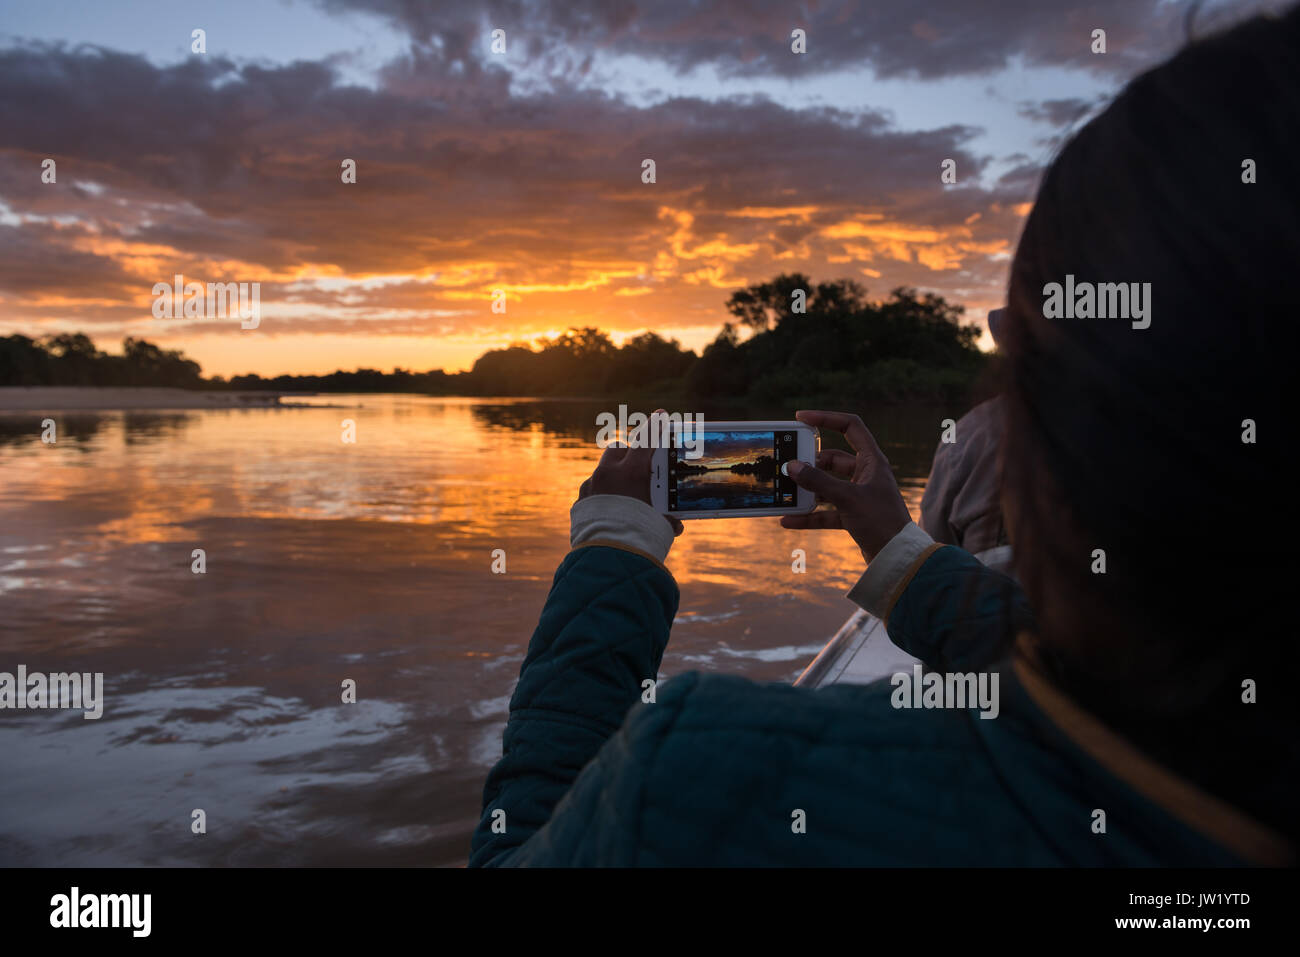 Tourist photographing the sunset with an iPhone - Stock Image